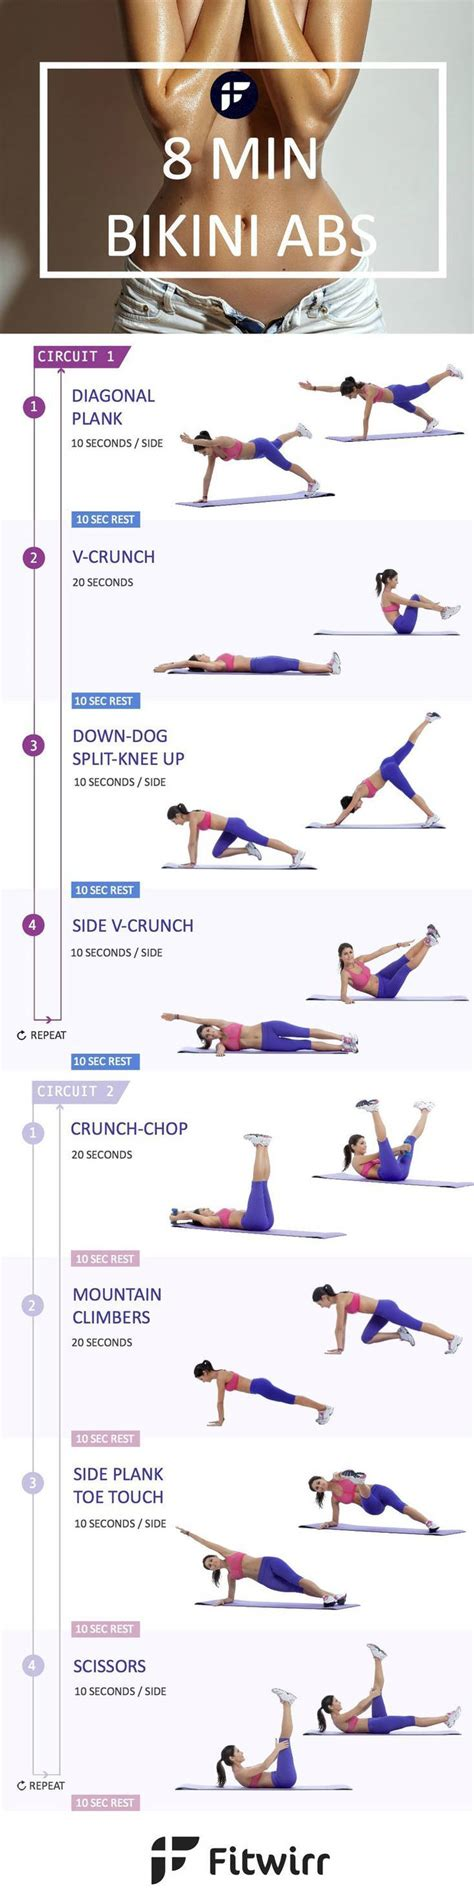 amazing flat belly workout routines   sculpt  abs